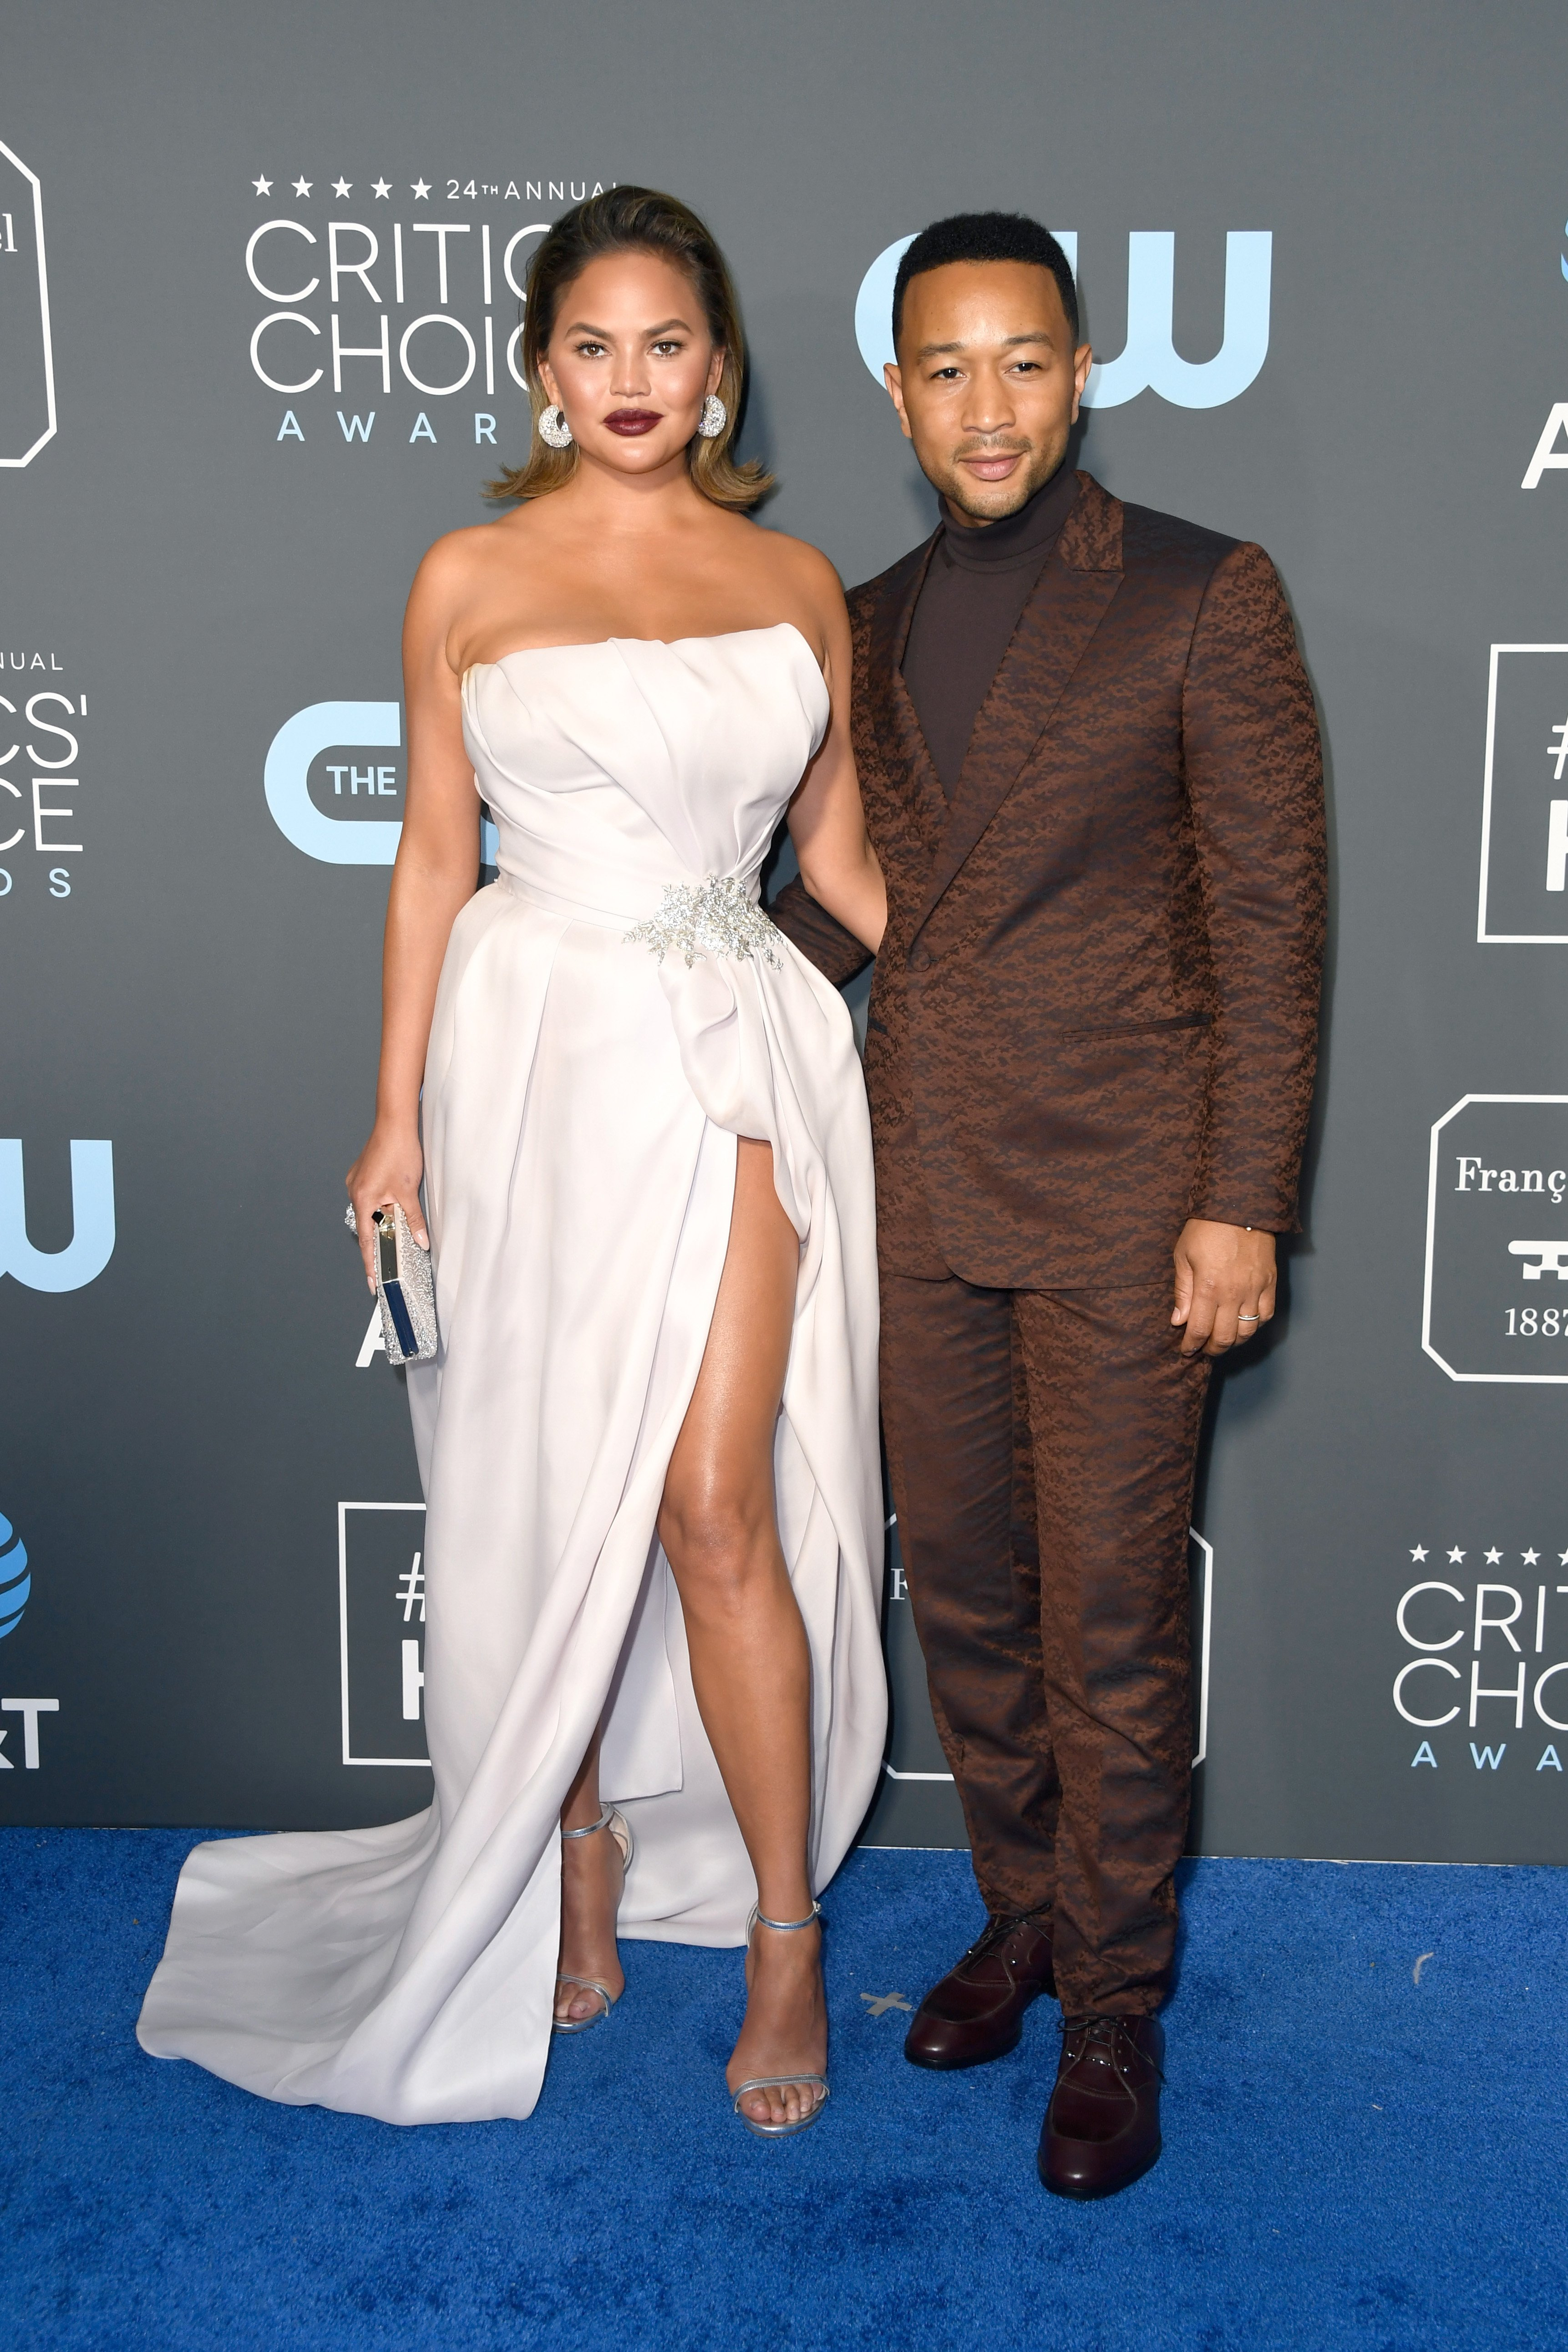 Chrissy Teigen and John Legend at the 24th annual Critics' Choice Awards 2019 in California | Source: Getty Images